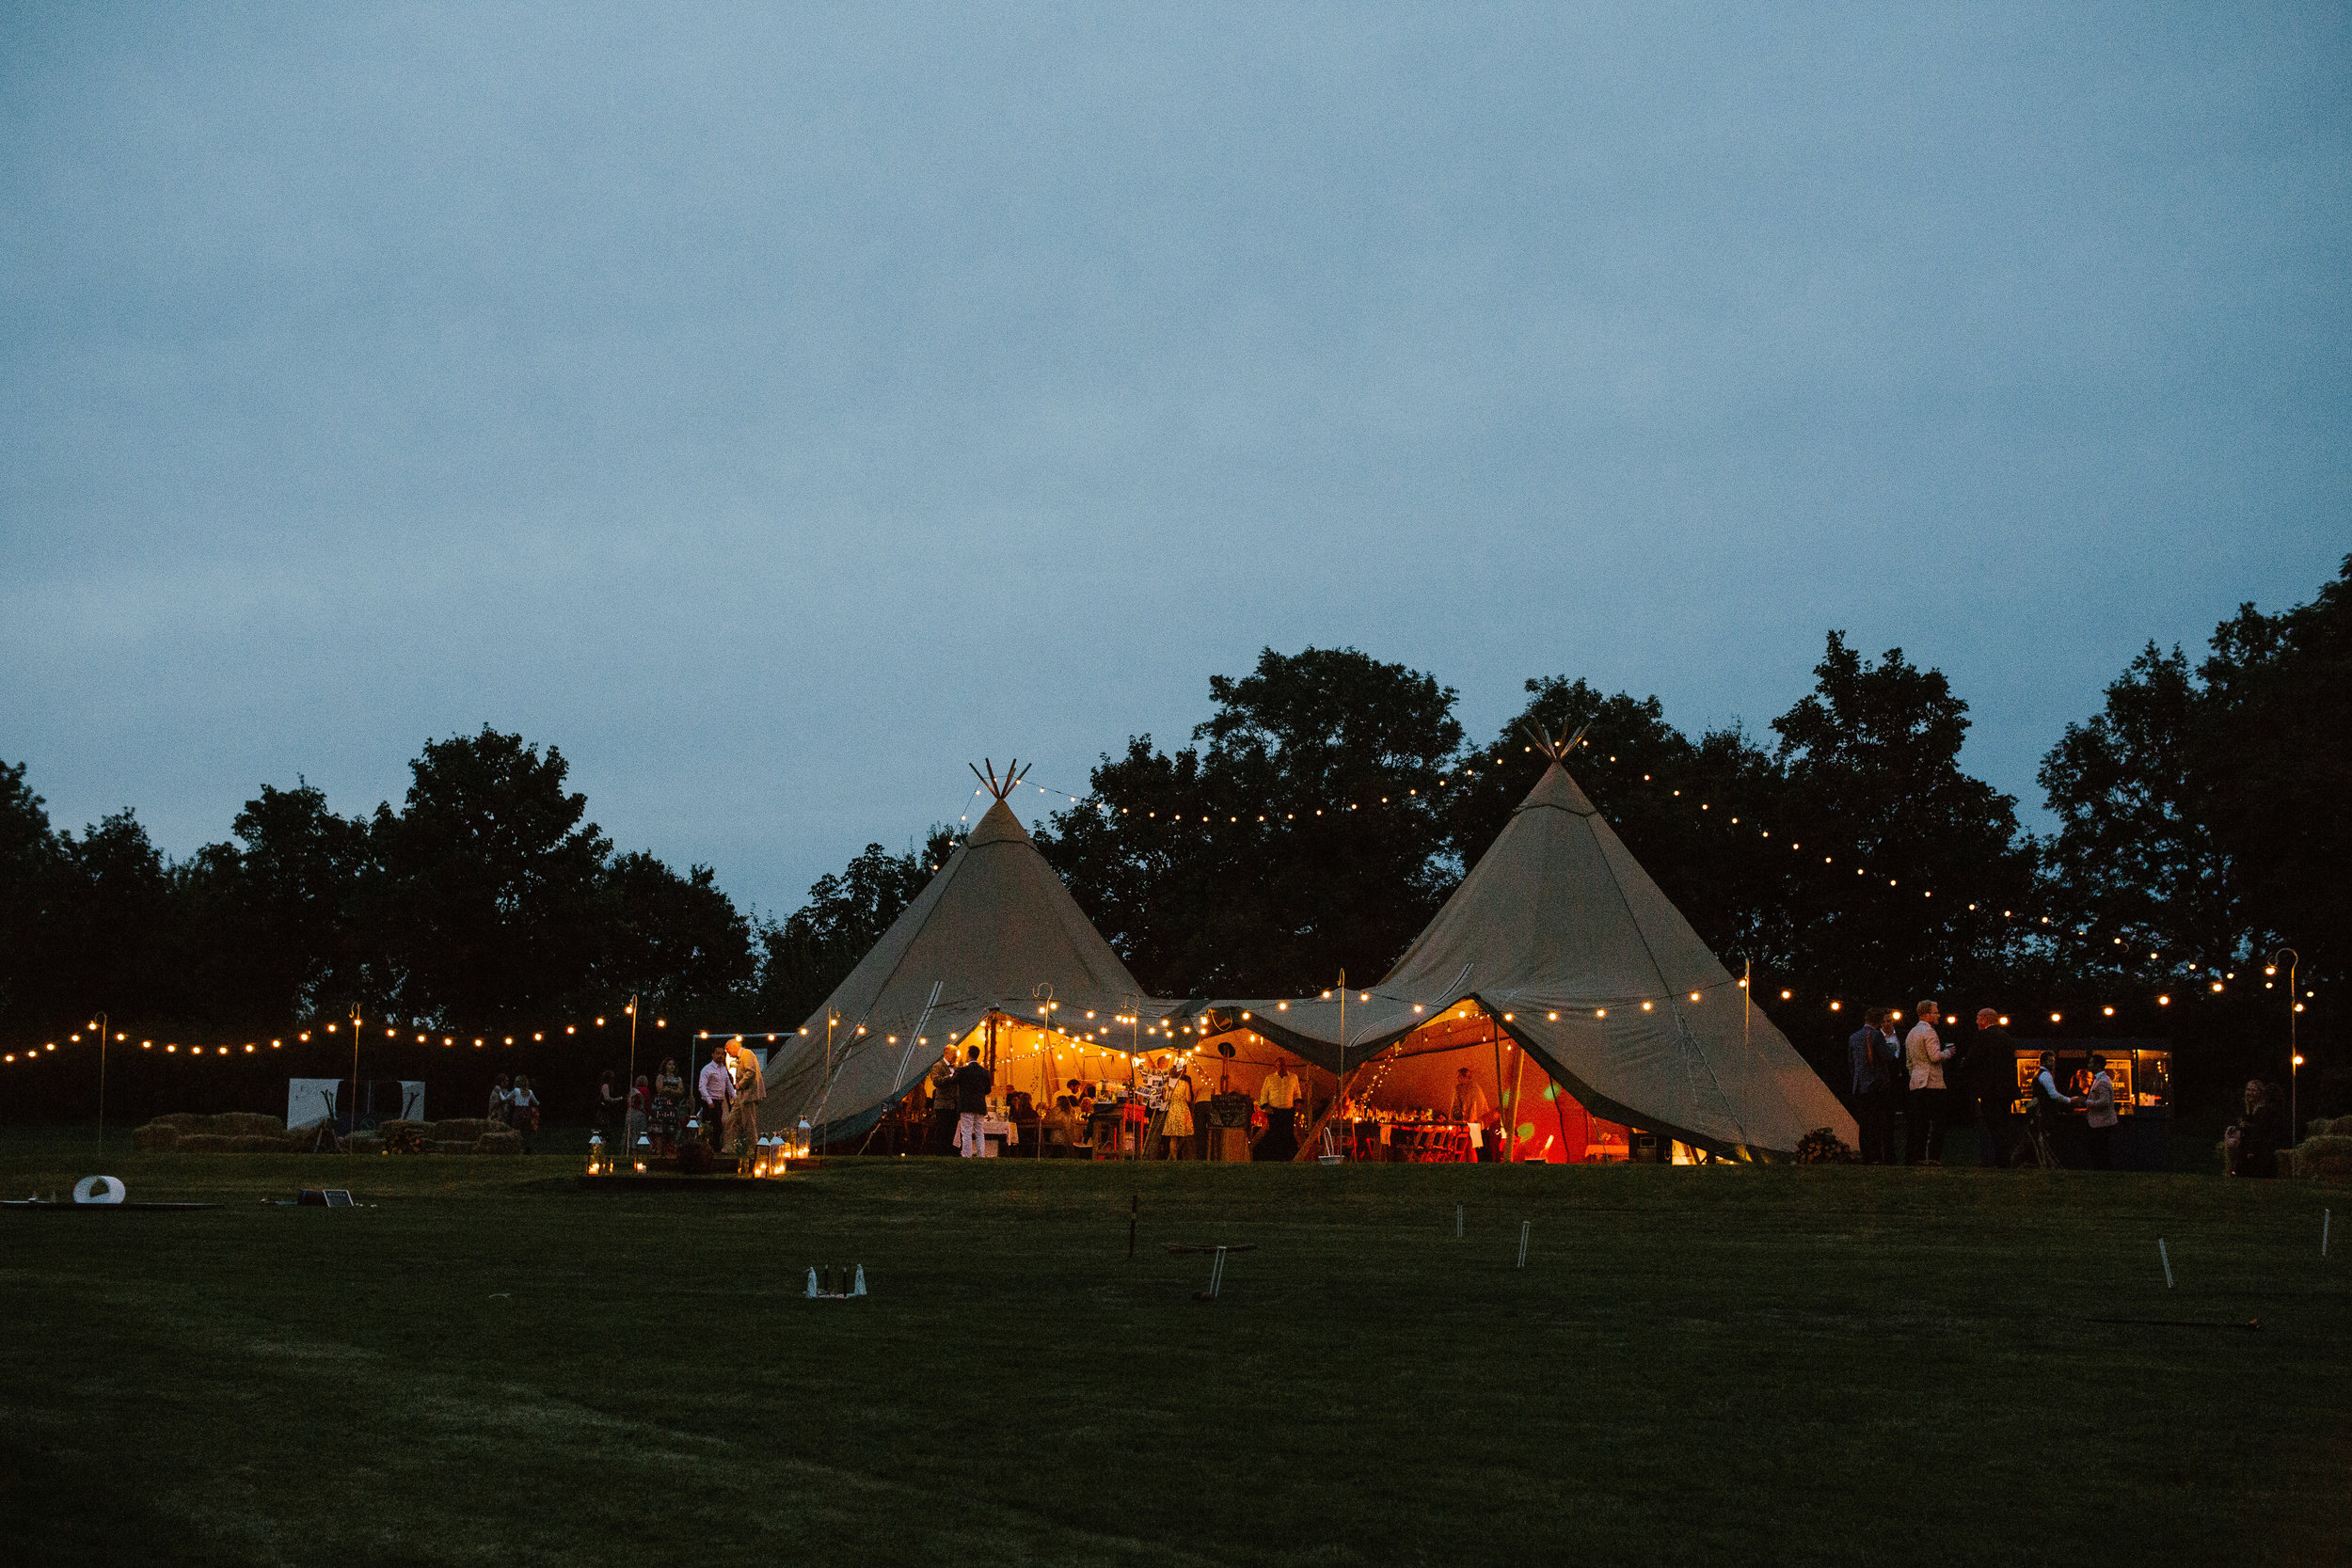 shot of the tipi at night time with the festoon lights creating an atmosphere